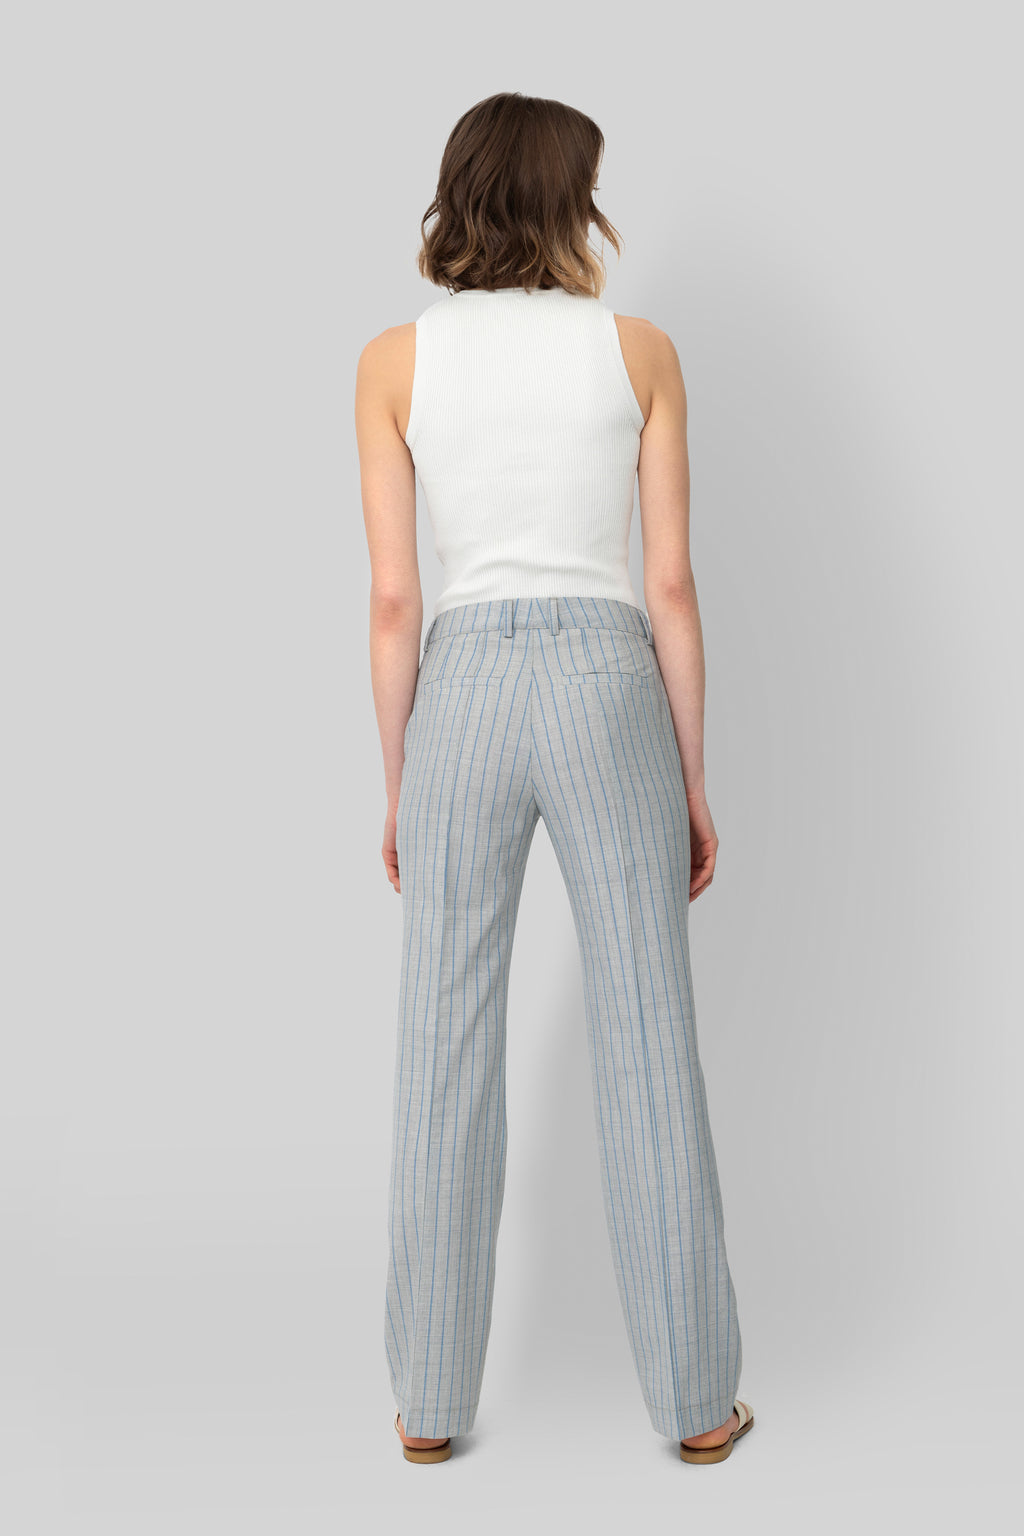 The Grey and Ciel Wool Lover Pants